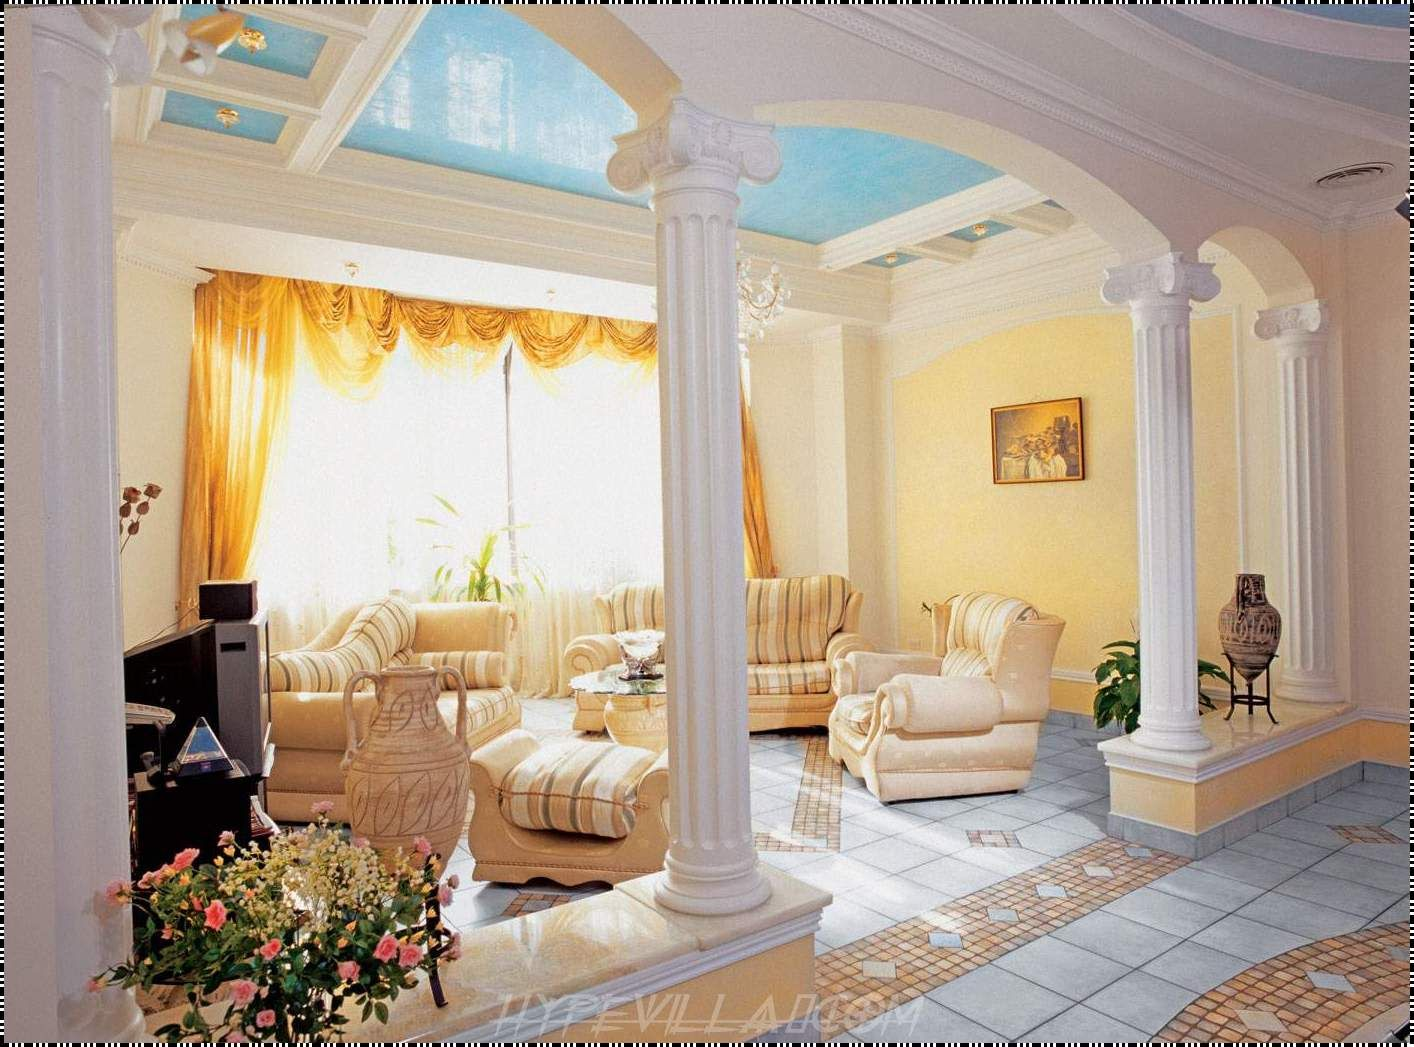 Best Images About Luxury Living Rooms On Pinterest Good Luck - Luxury living room designs photos